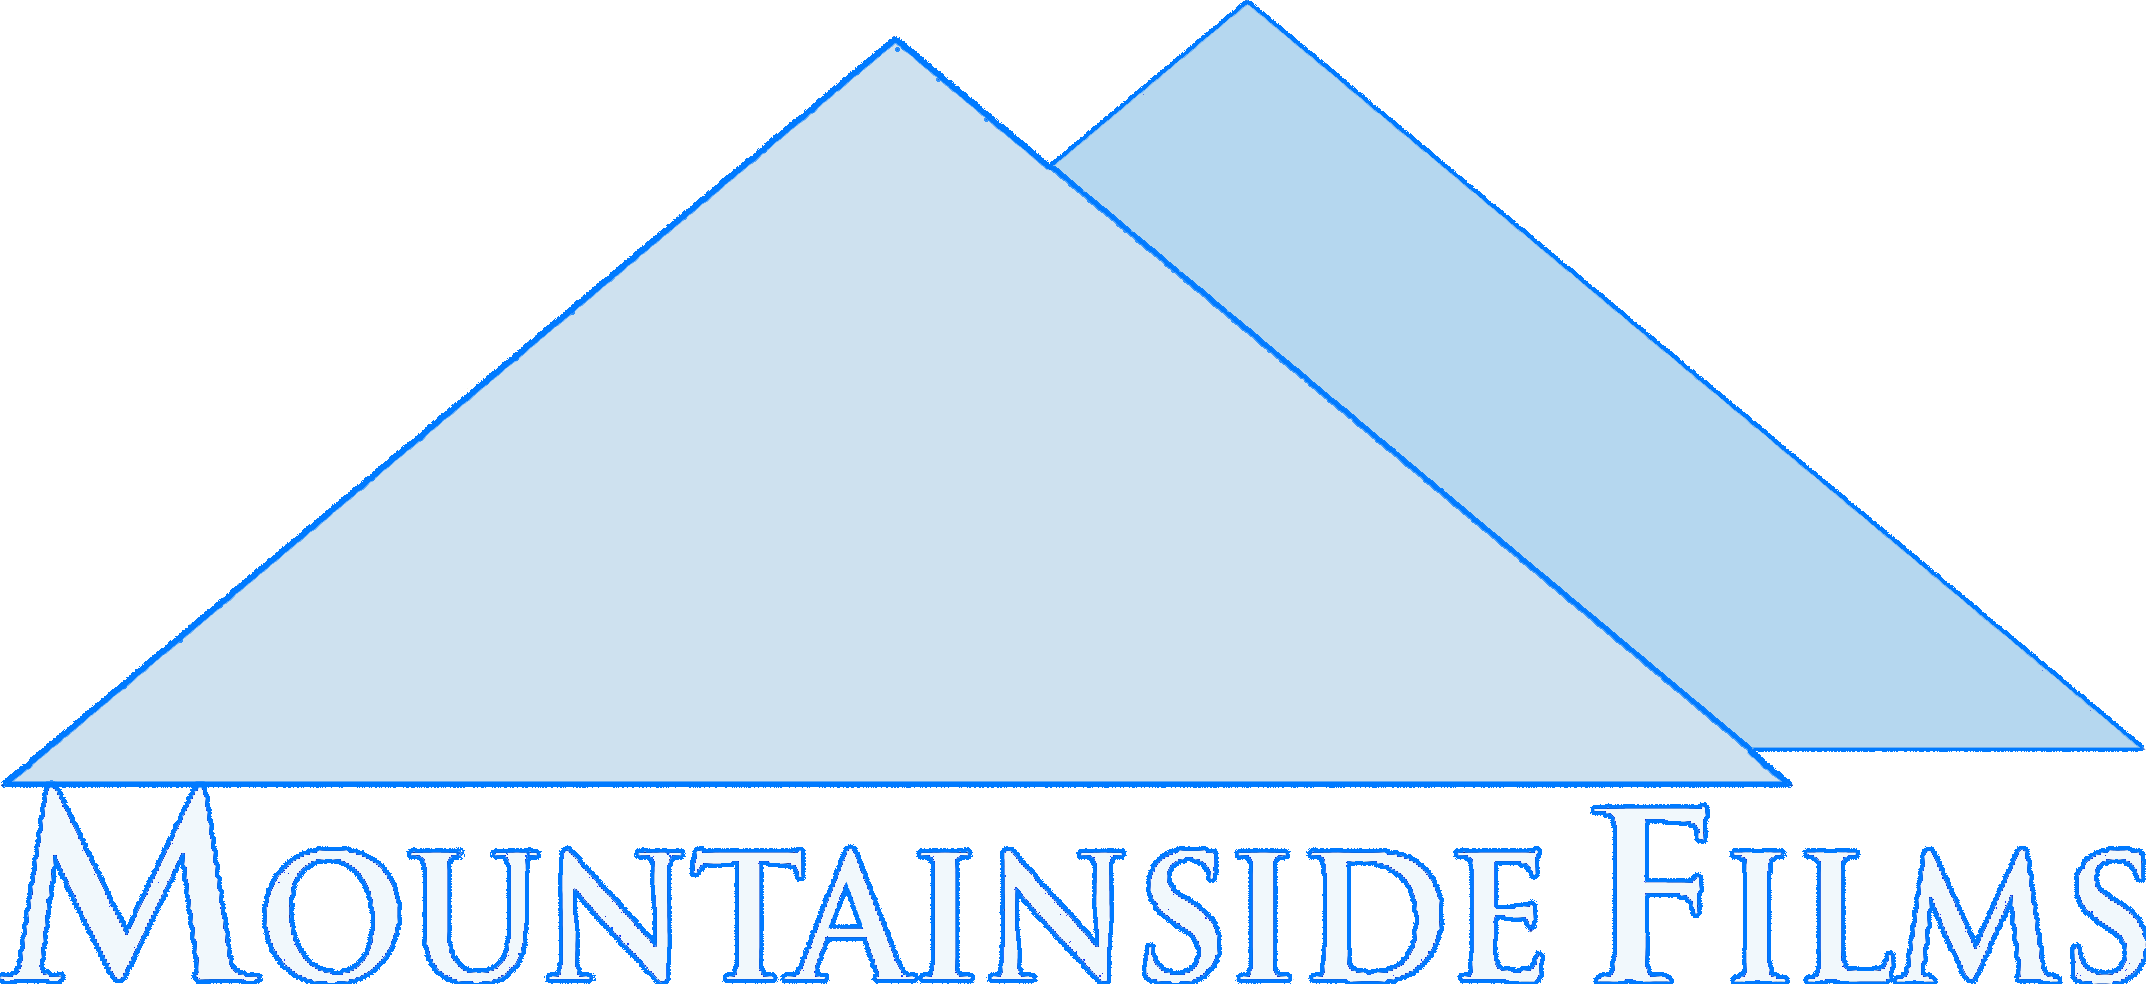 Mountainside Films